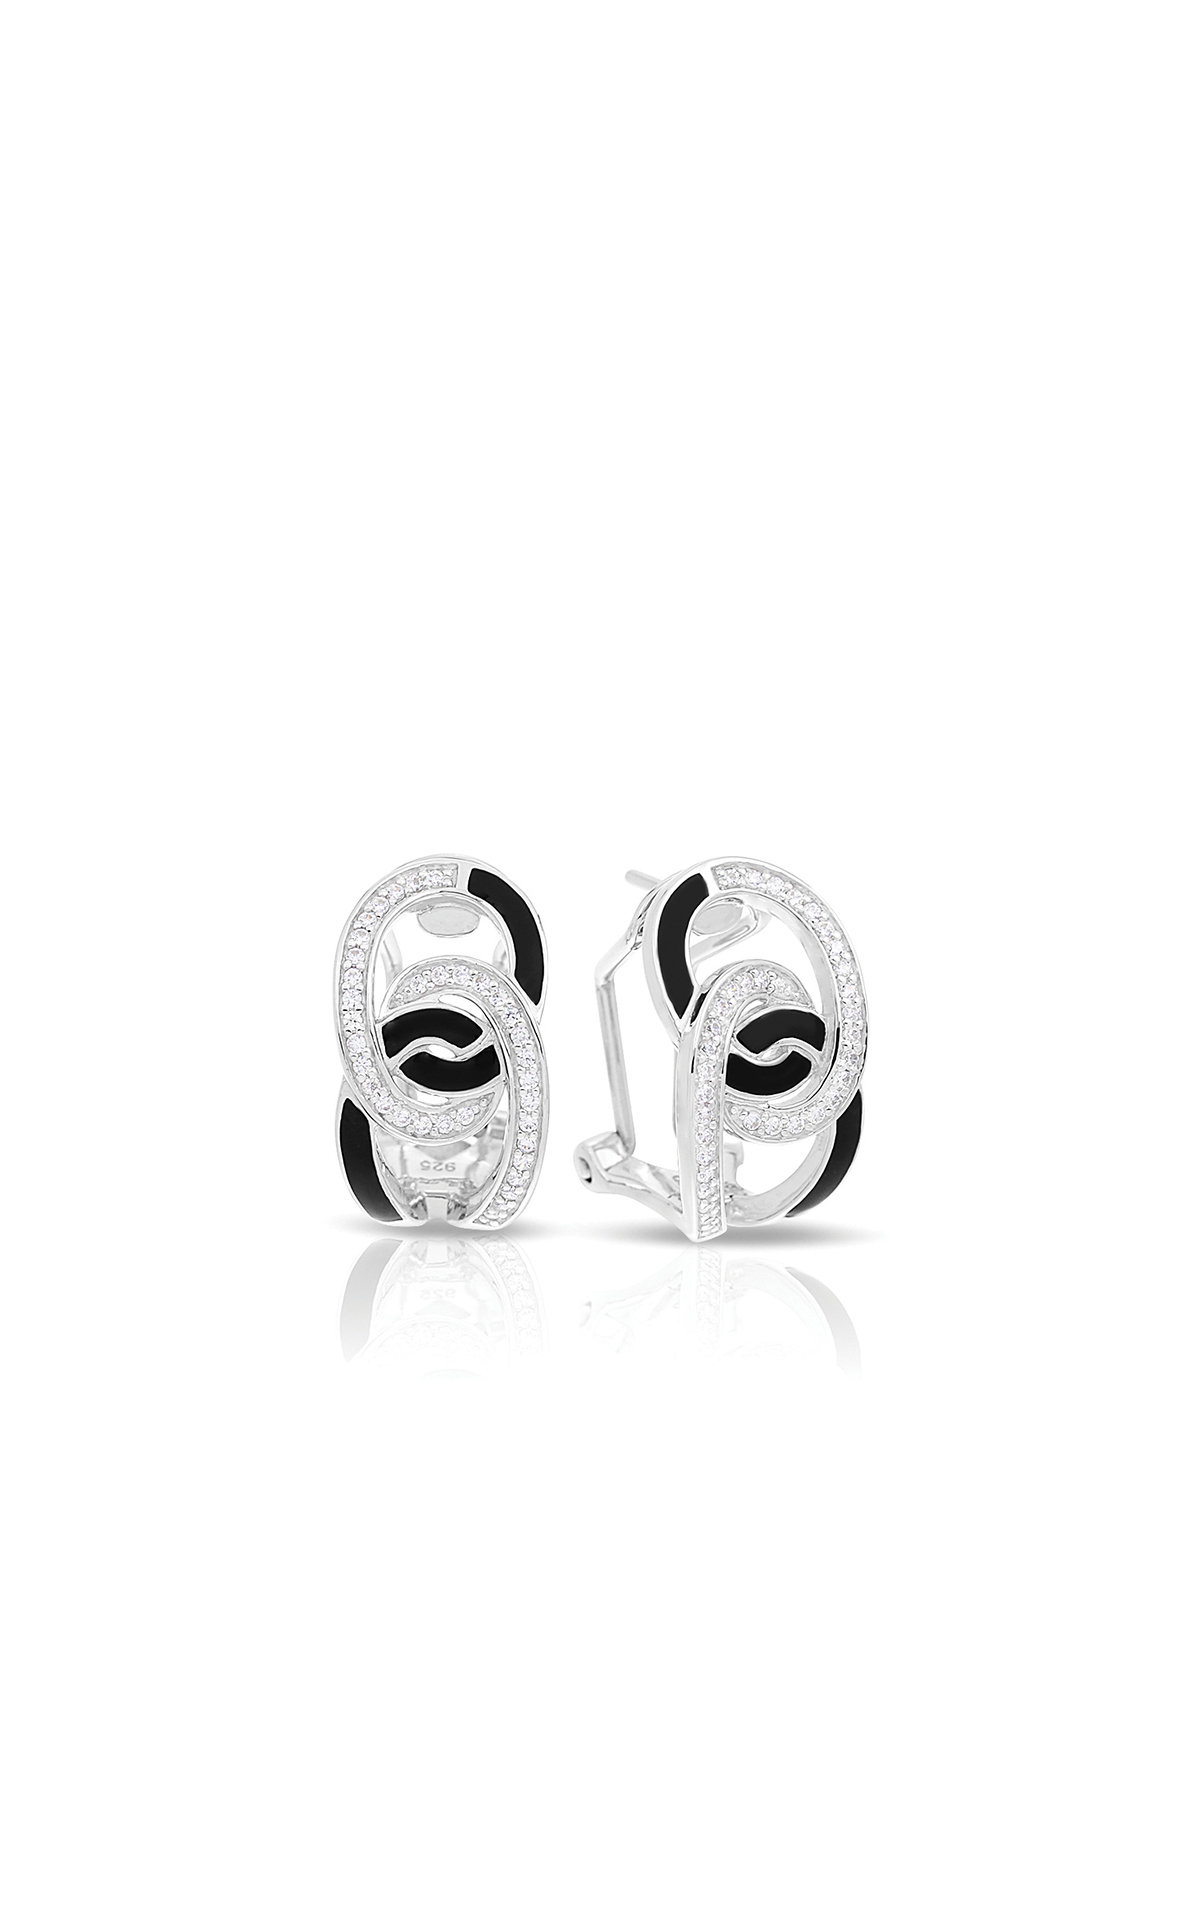 Belle Etoile Evermore Black Earrings 3021720201 product image